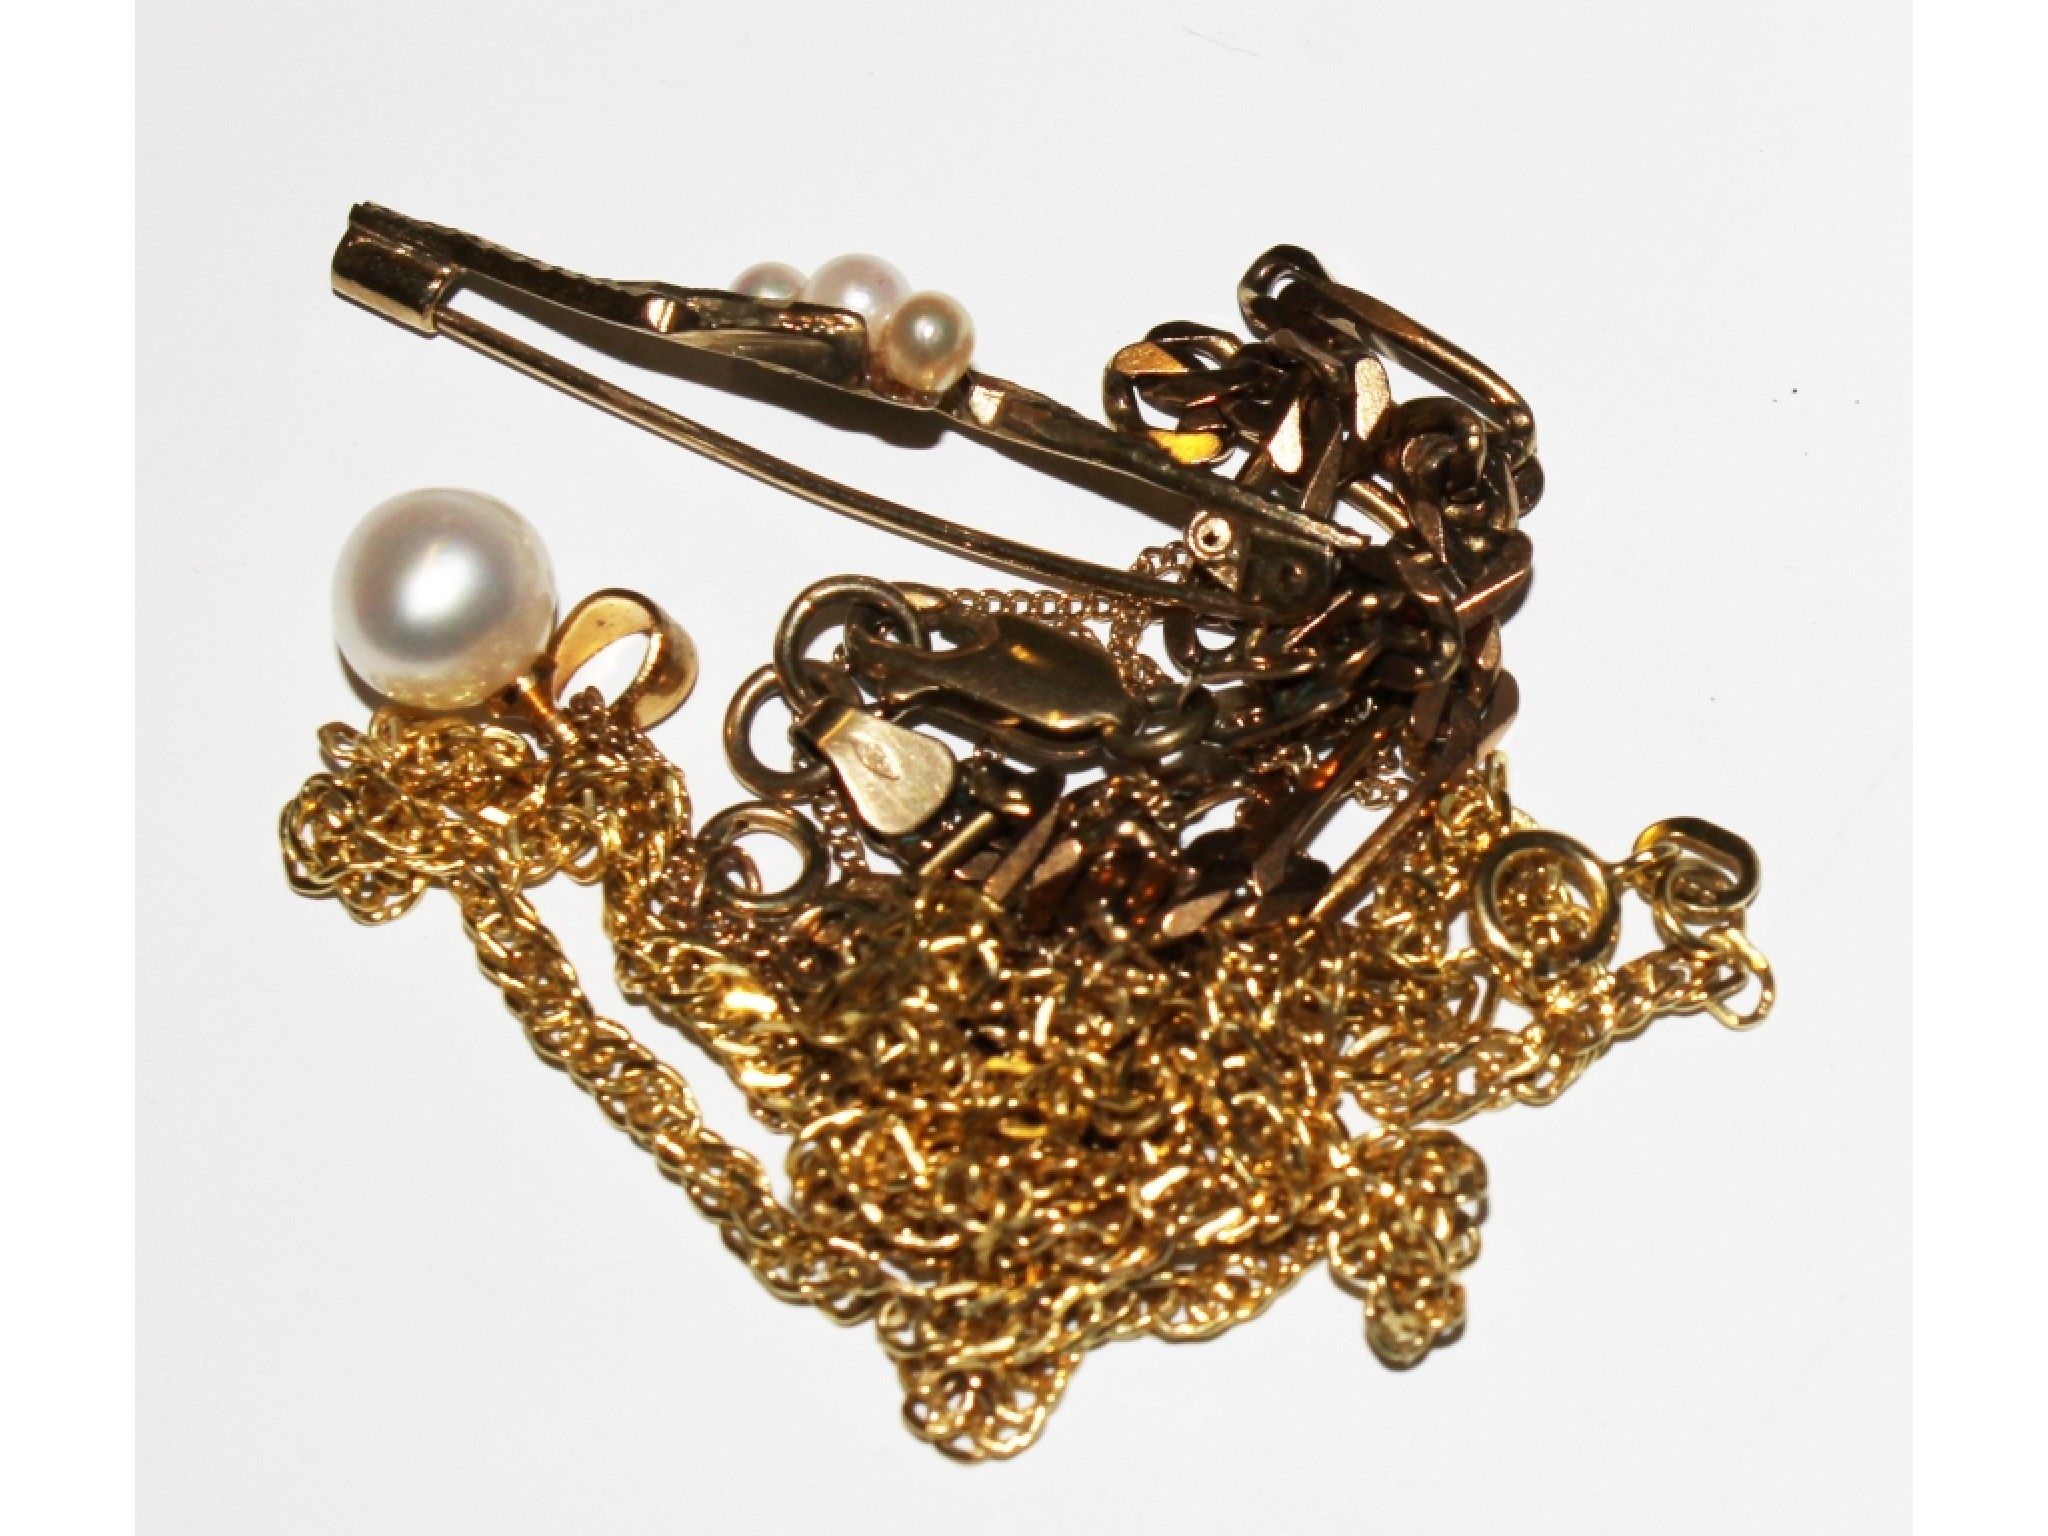 A 9 carat bracelet, a 9 carat gold chain, a 9 carat gold bar brooch and a 9 carat gold and pearl set neck chain (4)